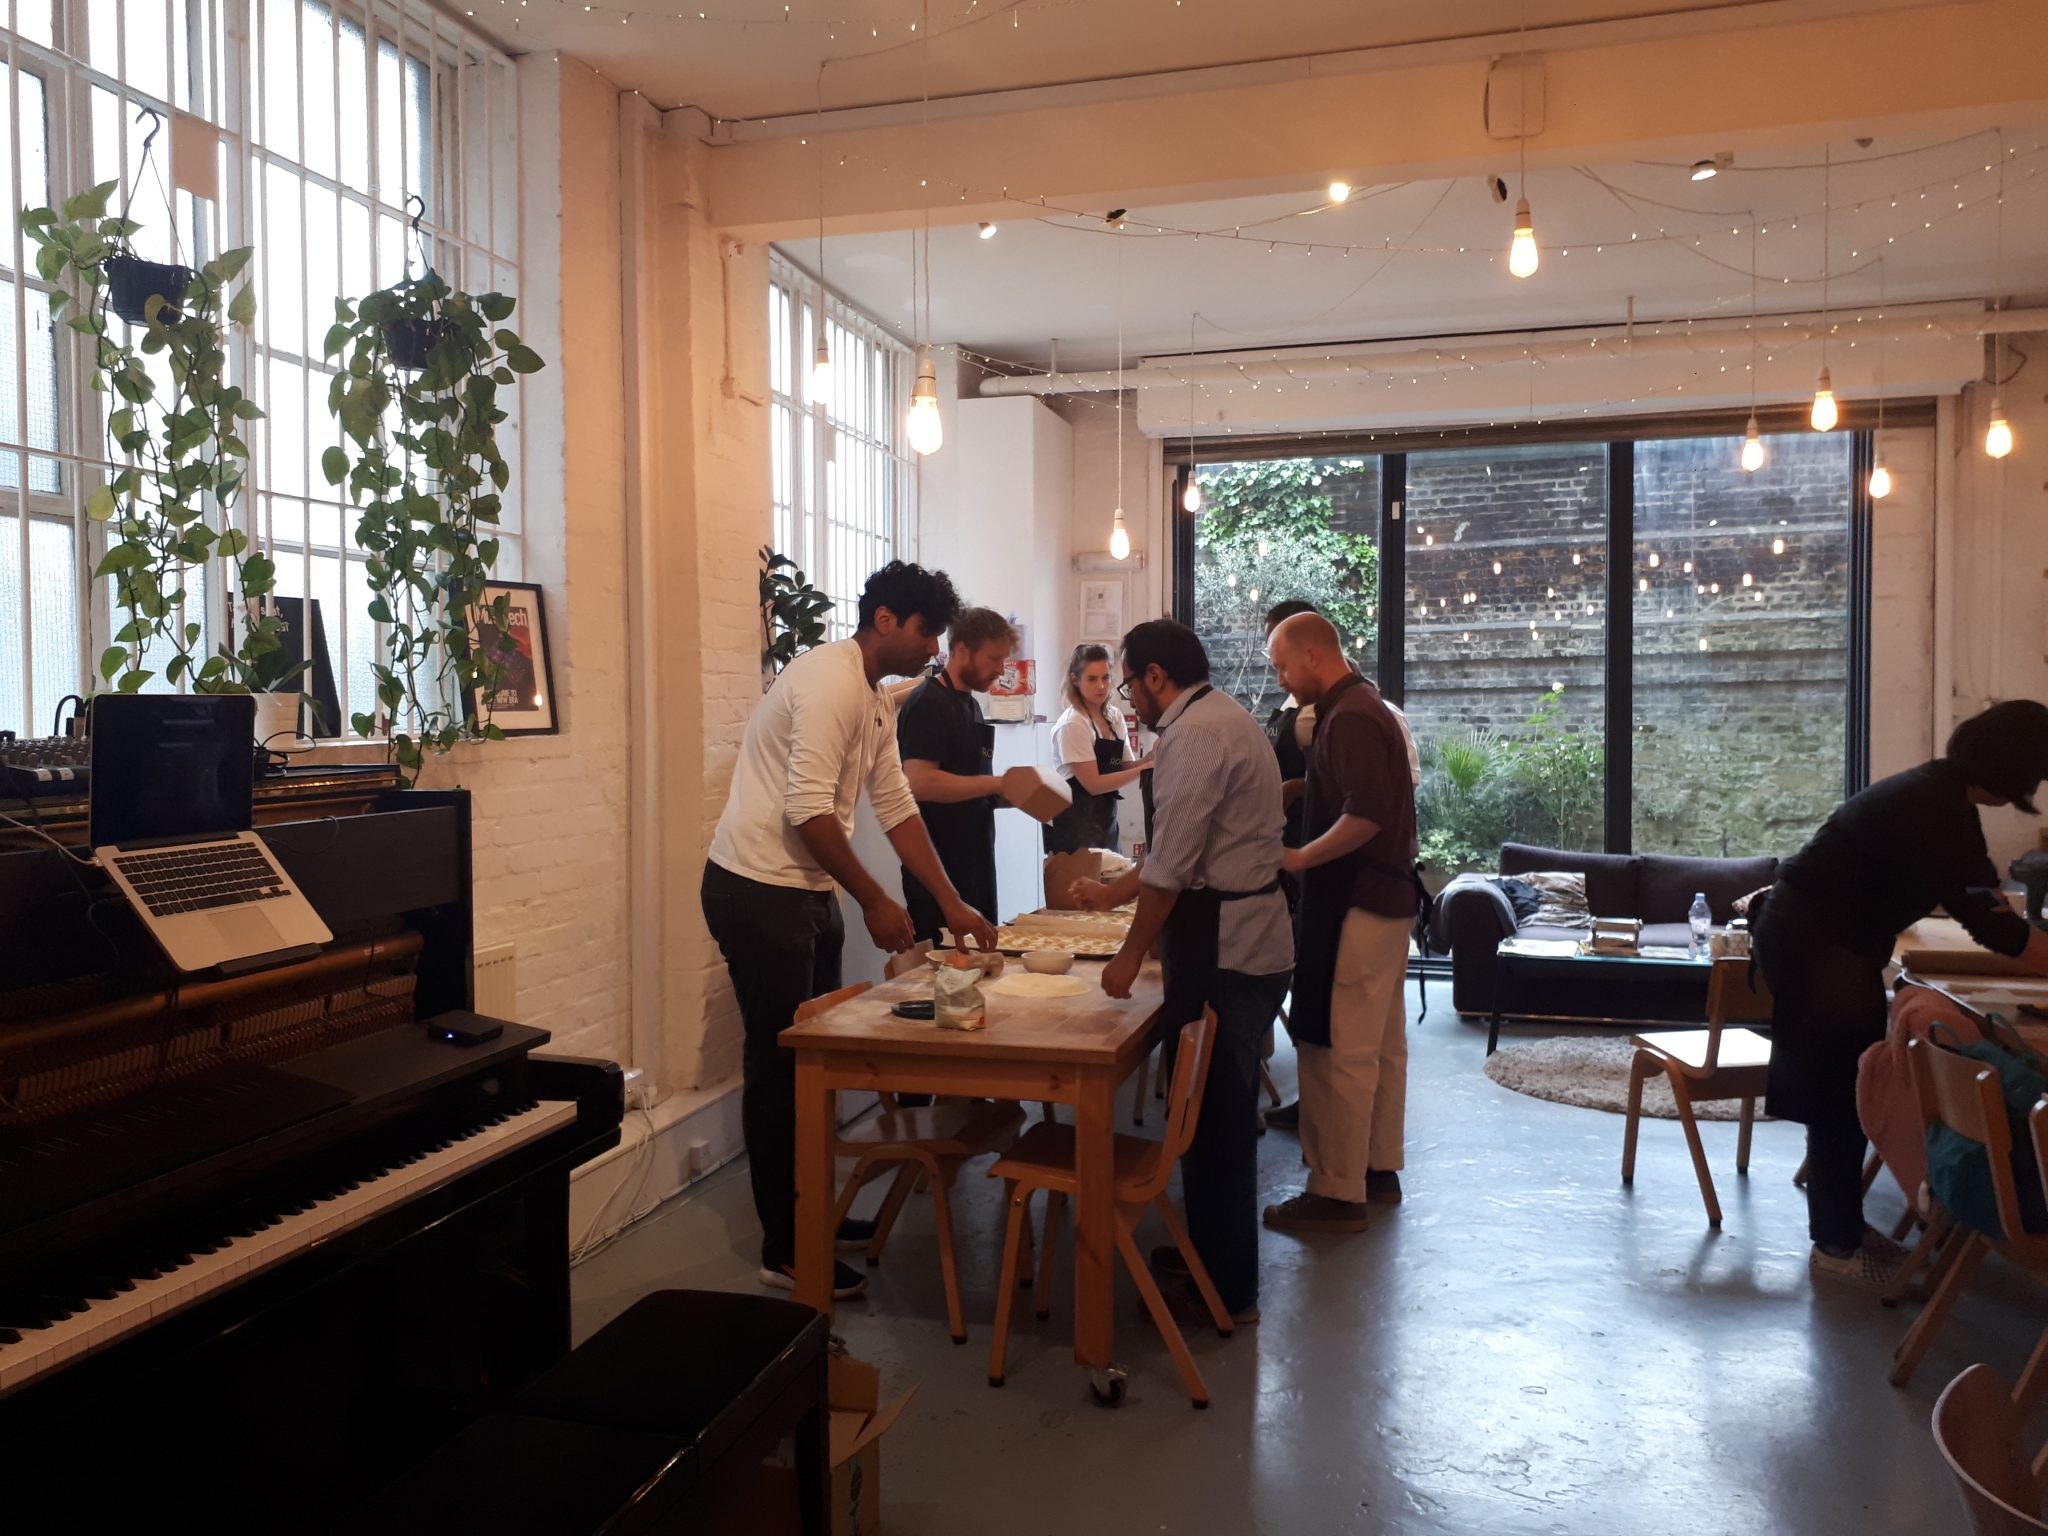 Photo of pasta-making workshop at Roli's office.